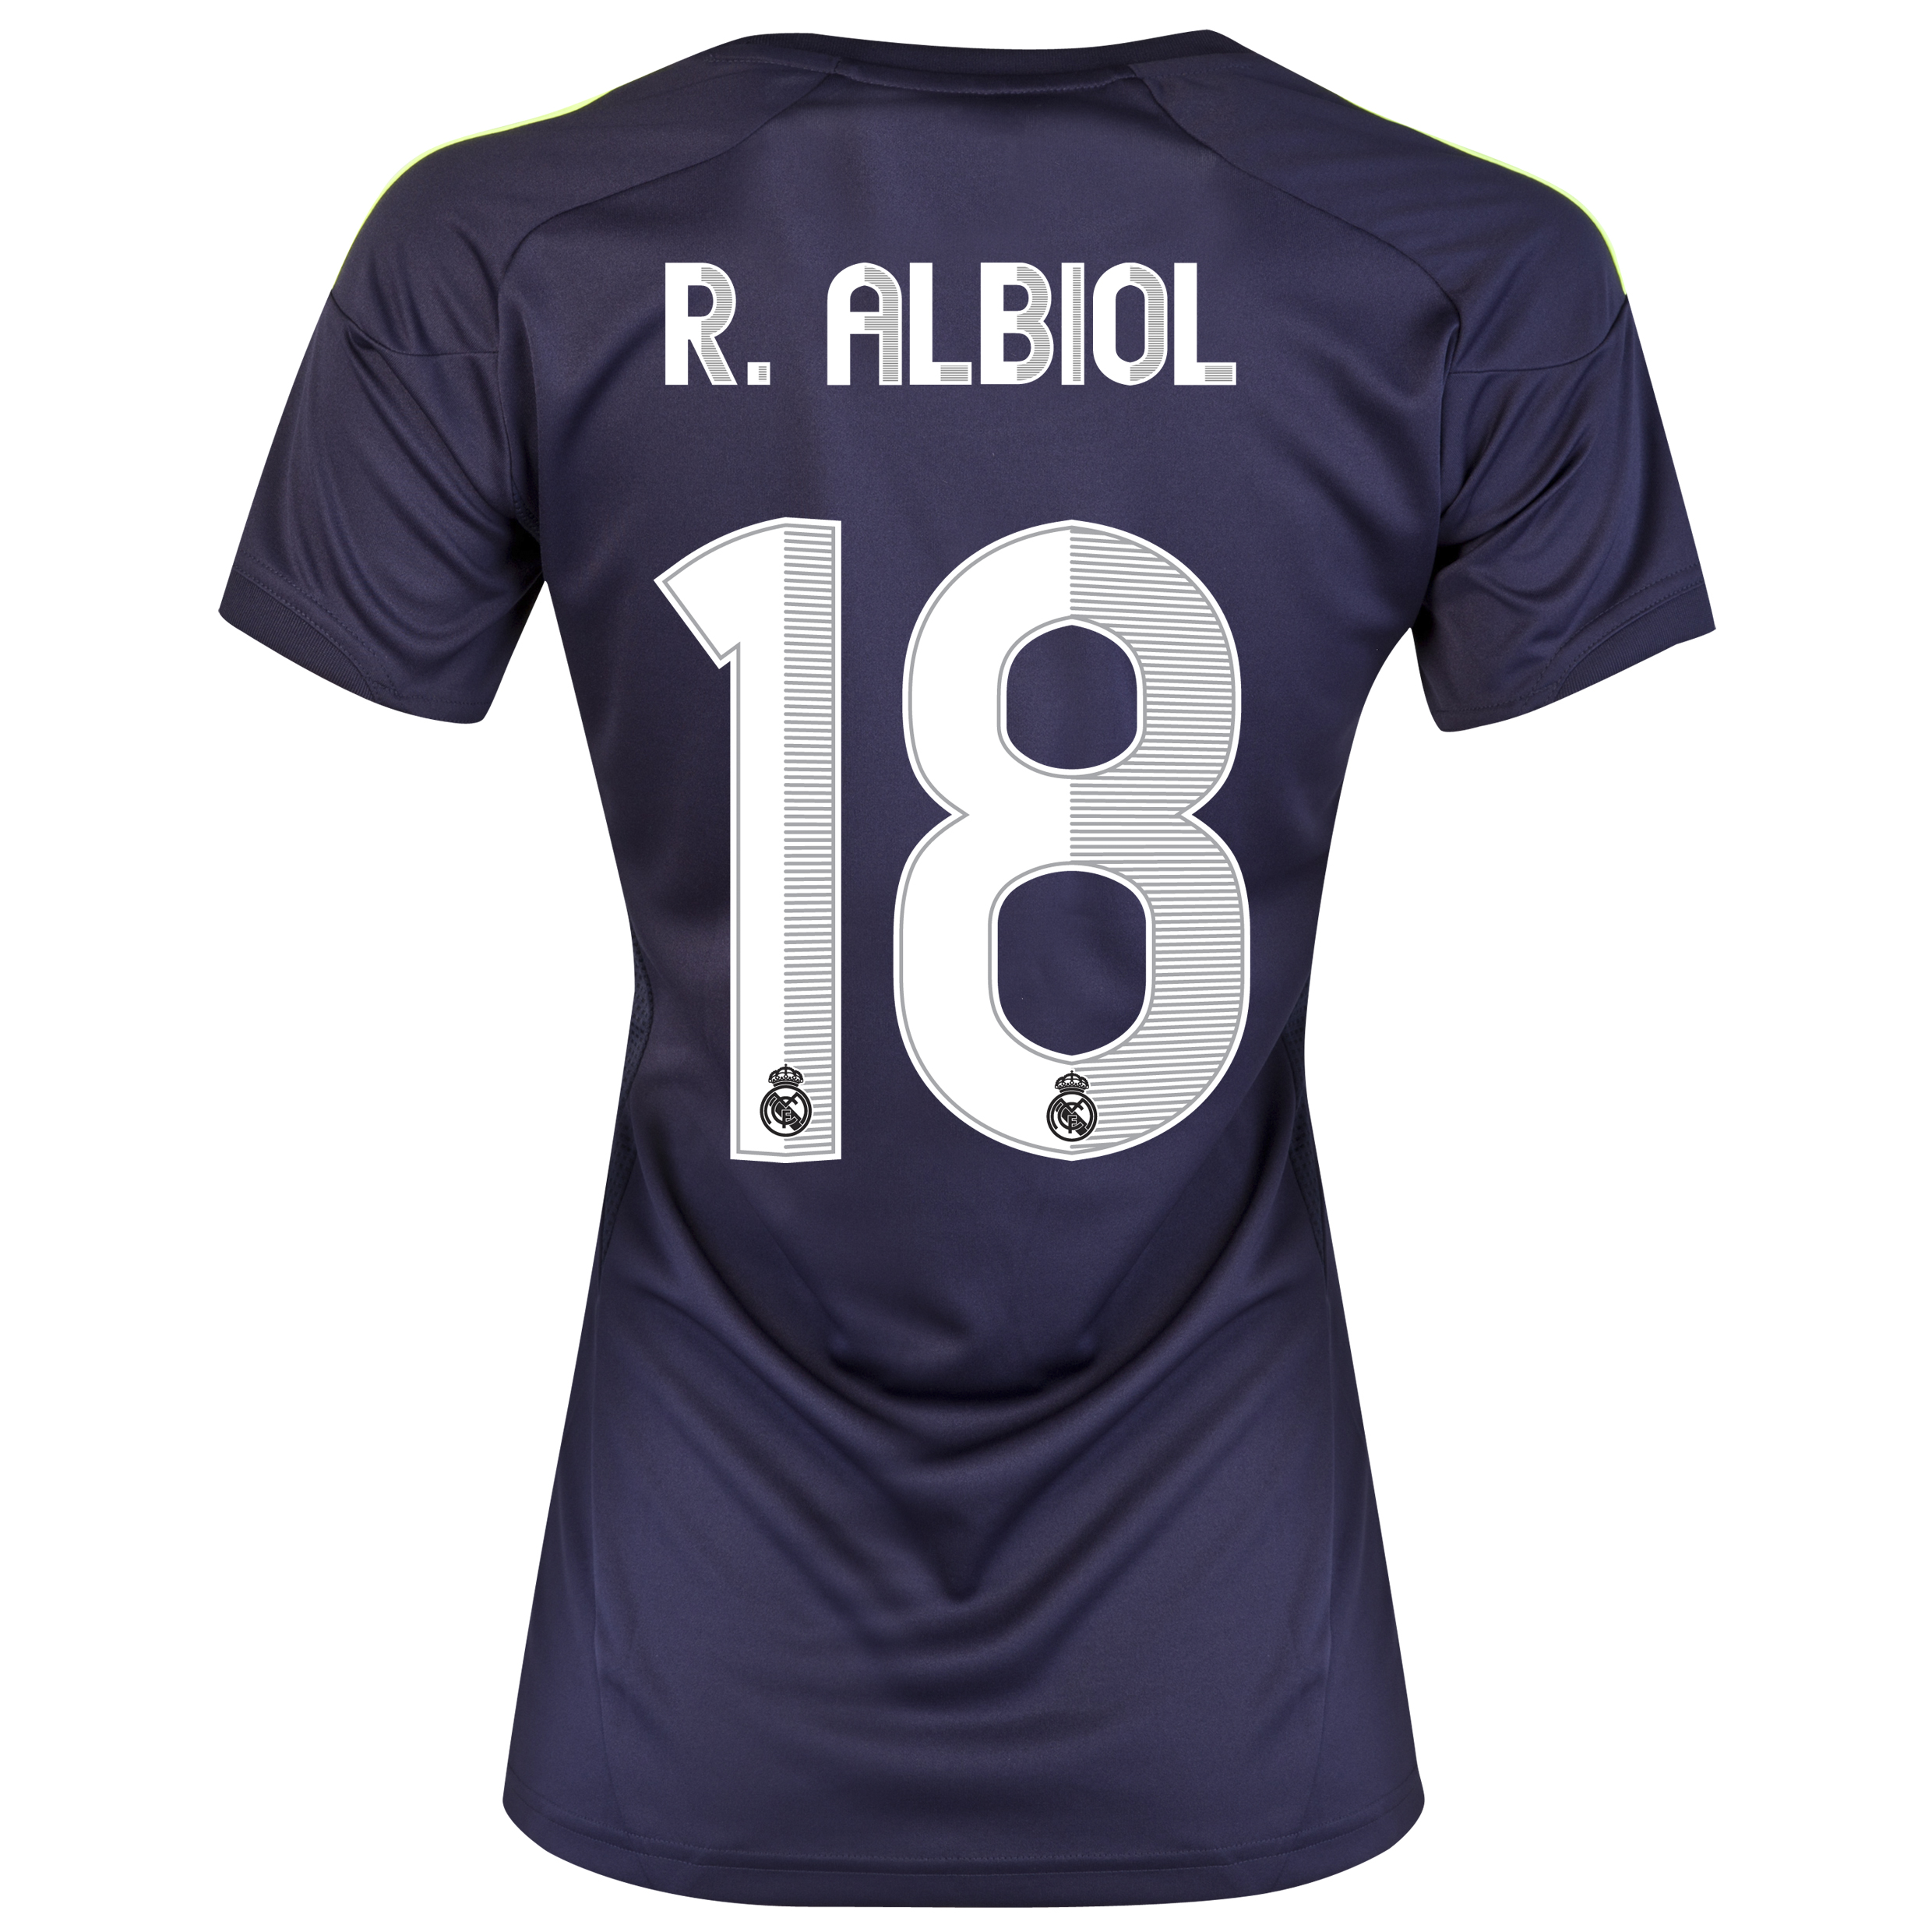 Camiseta visitante Real Madrid 2012/13 con impresin 18 R.Albiol - Mujer